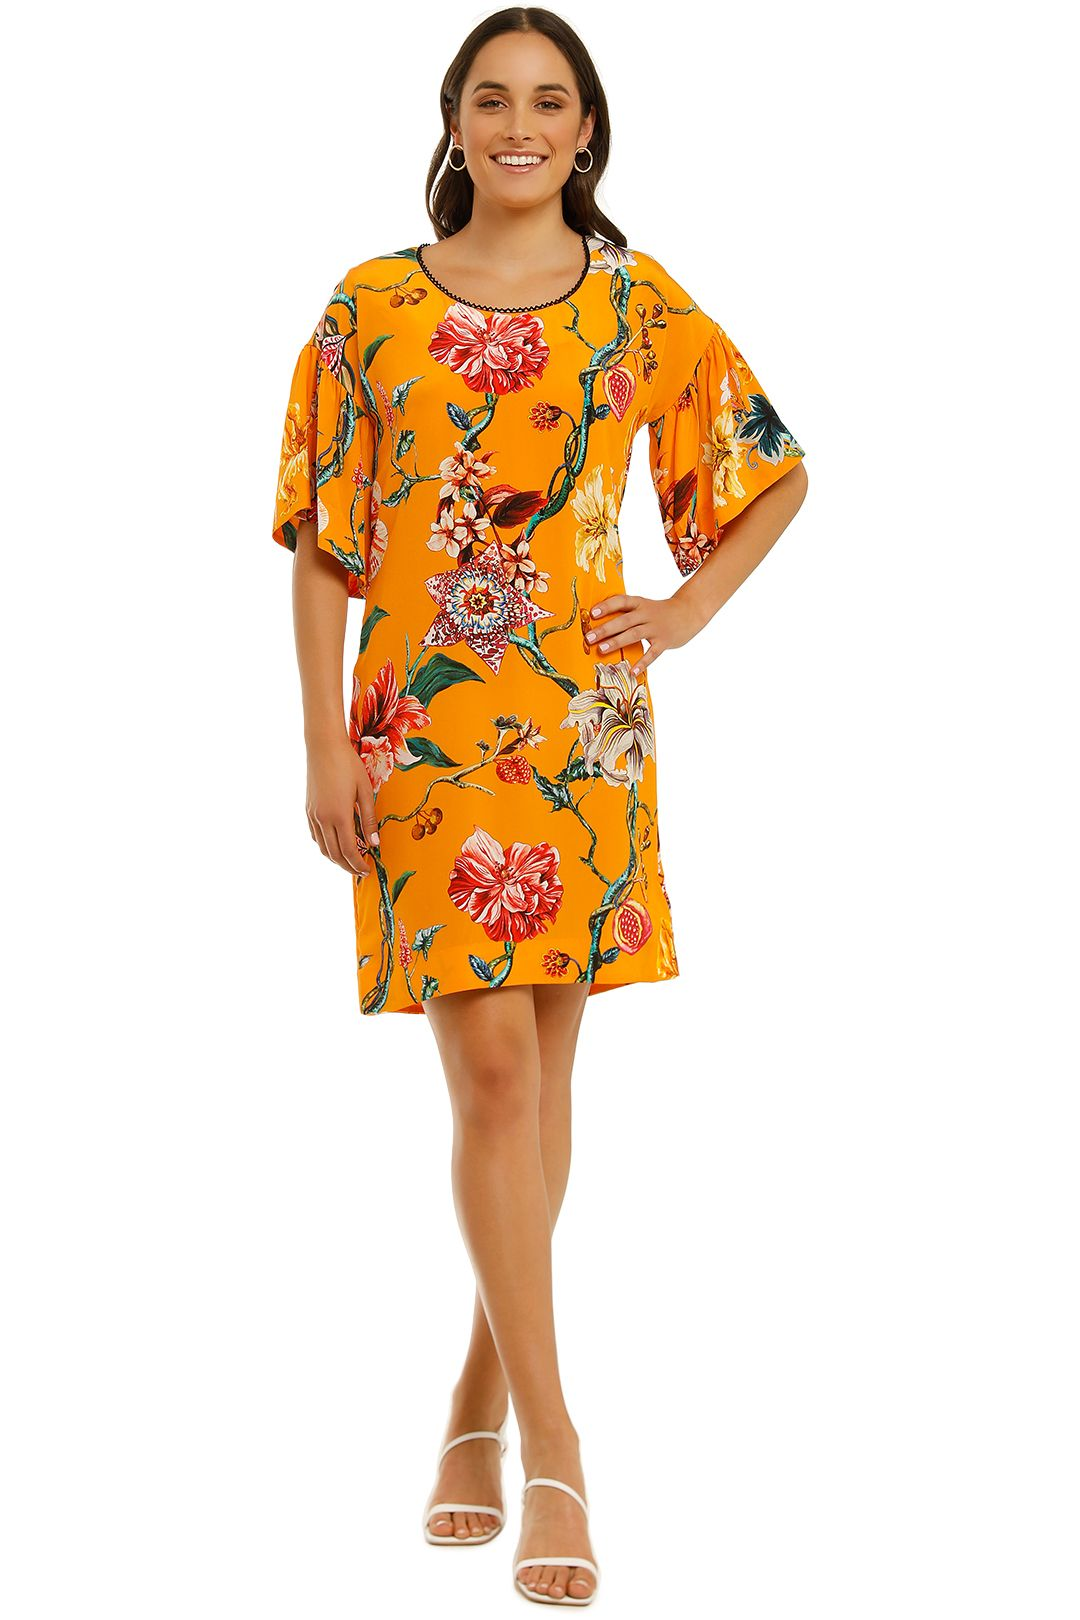 Trelise-Cooper-Nice-To-Sweet-You Tunic-Mango-Floral-Front